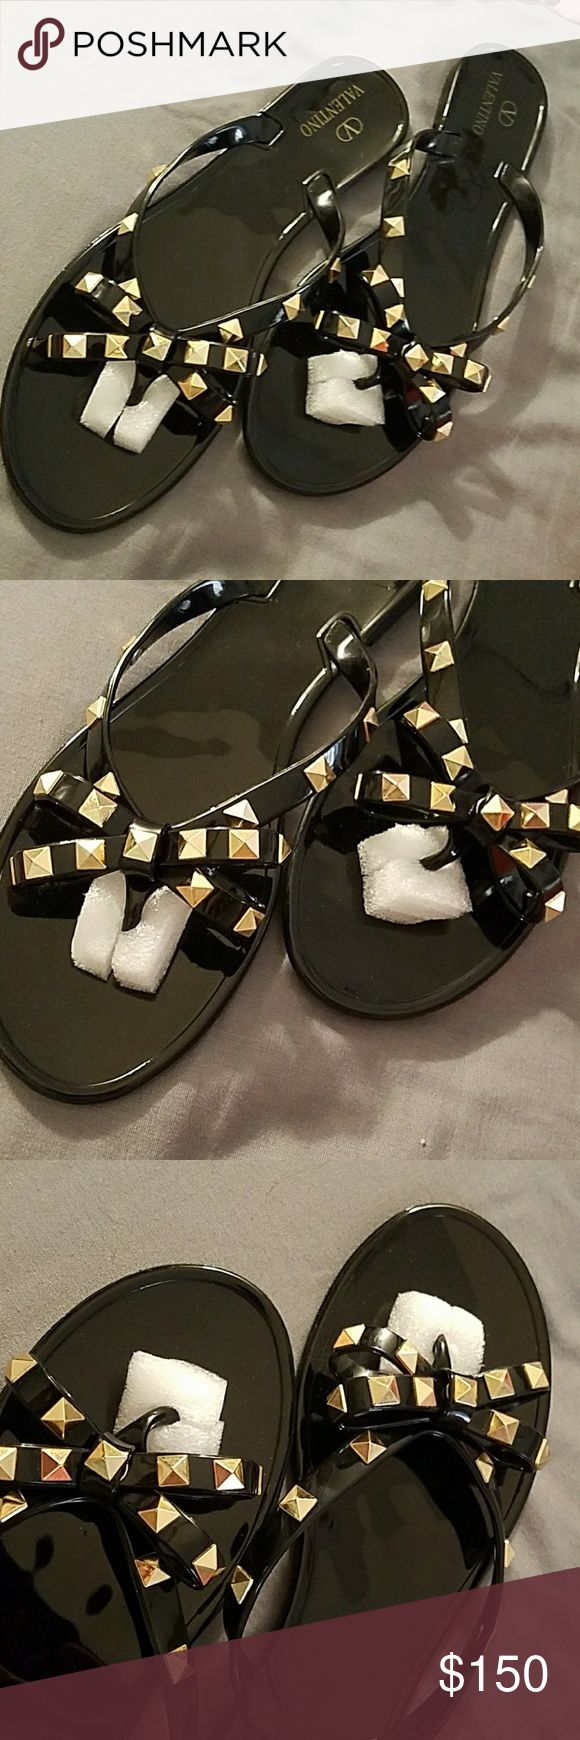 VALENTINO GARAVANI SANDALS/SLIPPERS BRAND NEW  MESSAGE ME FIRST FOR UR SIZE AVAILABLE IN SIZE 6-9 US SIZES Valentino Garavani Shoes Sandals